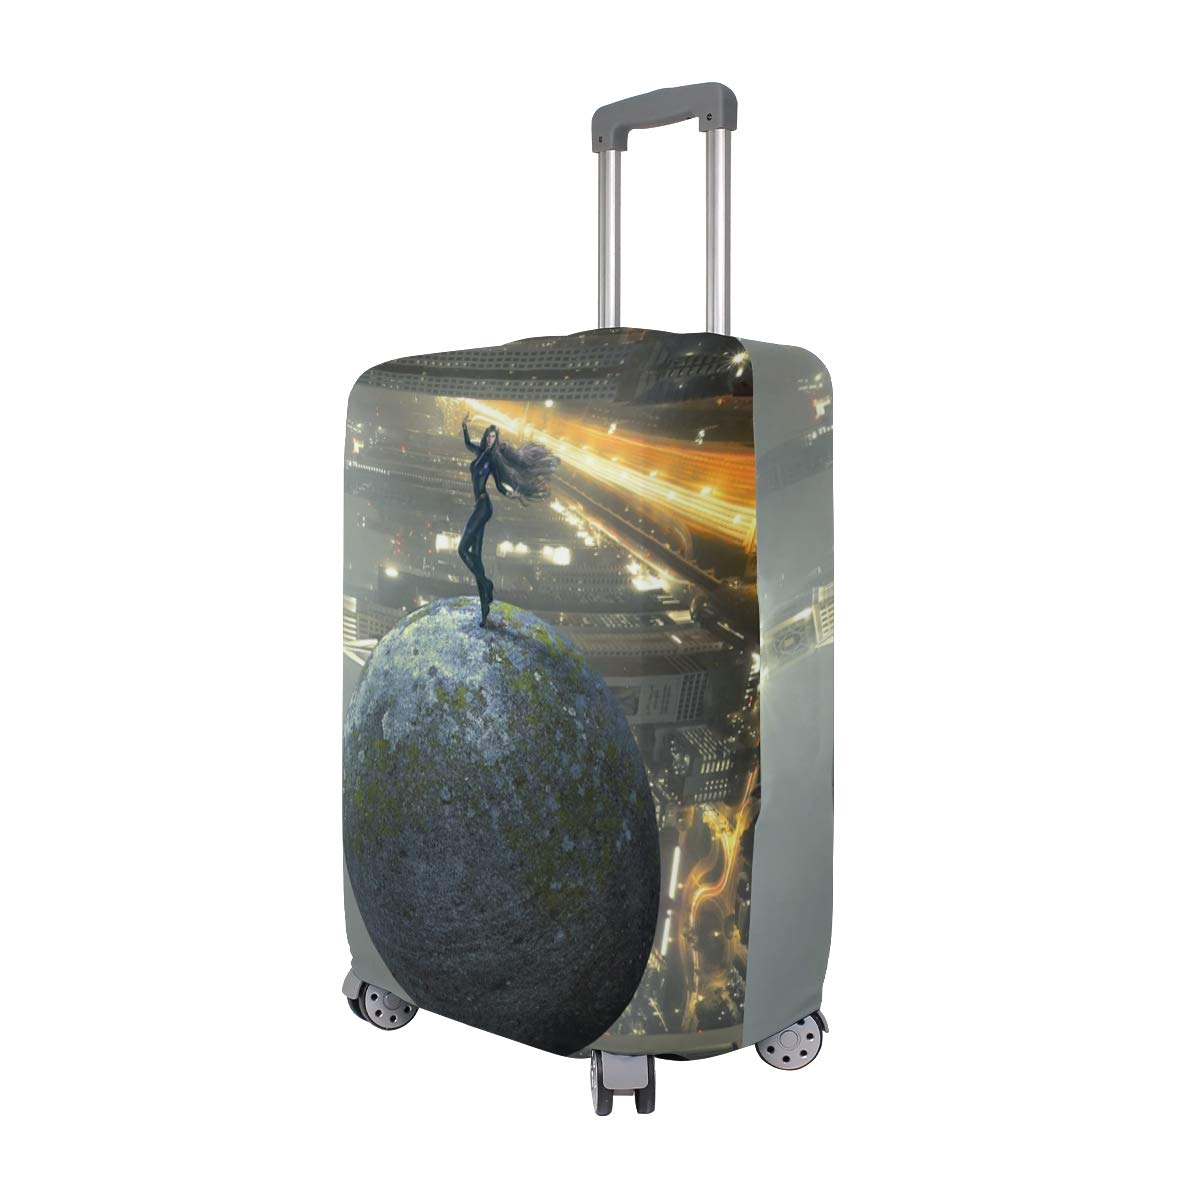 Girl Pose Ball Future Skyscrapers Creative Picture suitcase cover elastic suitcase cover zipper luggage case removable cleaning suitable for 29-32 trunk cover